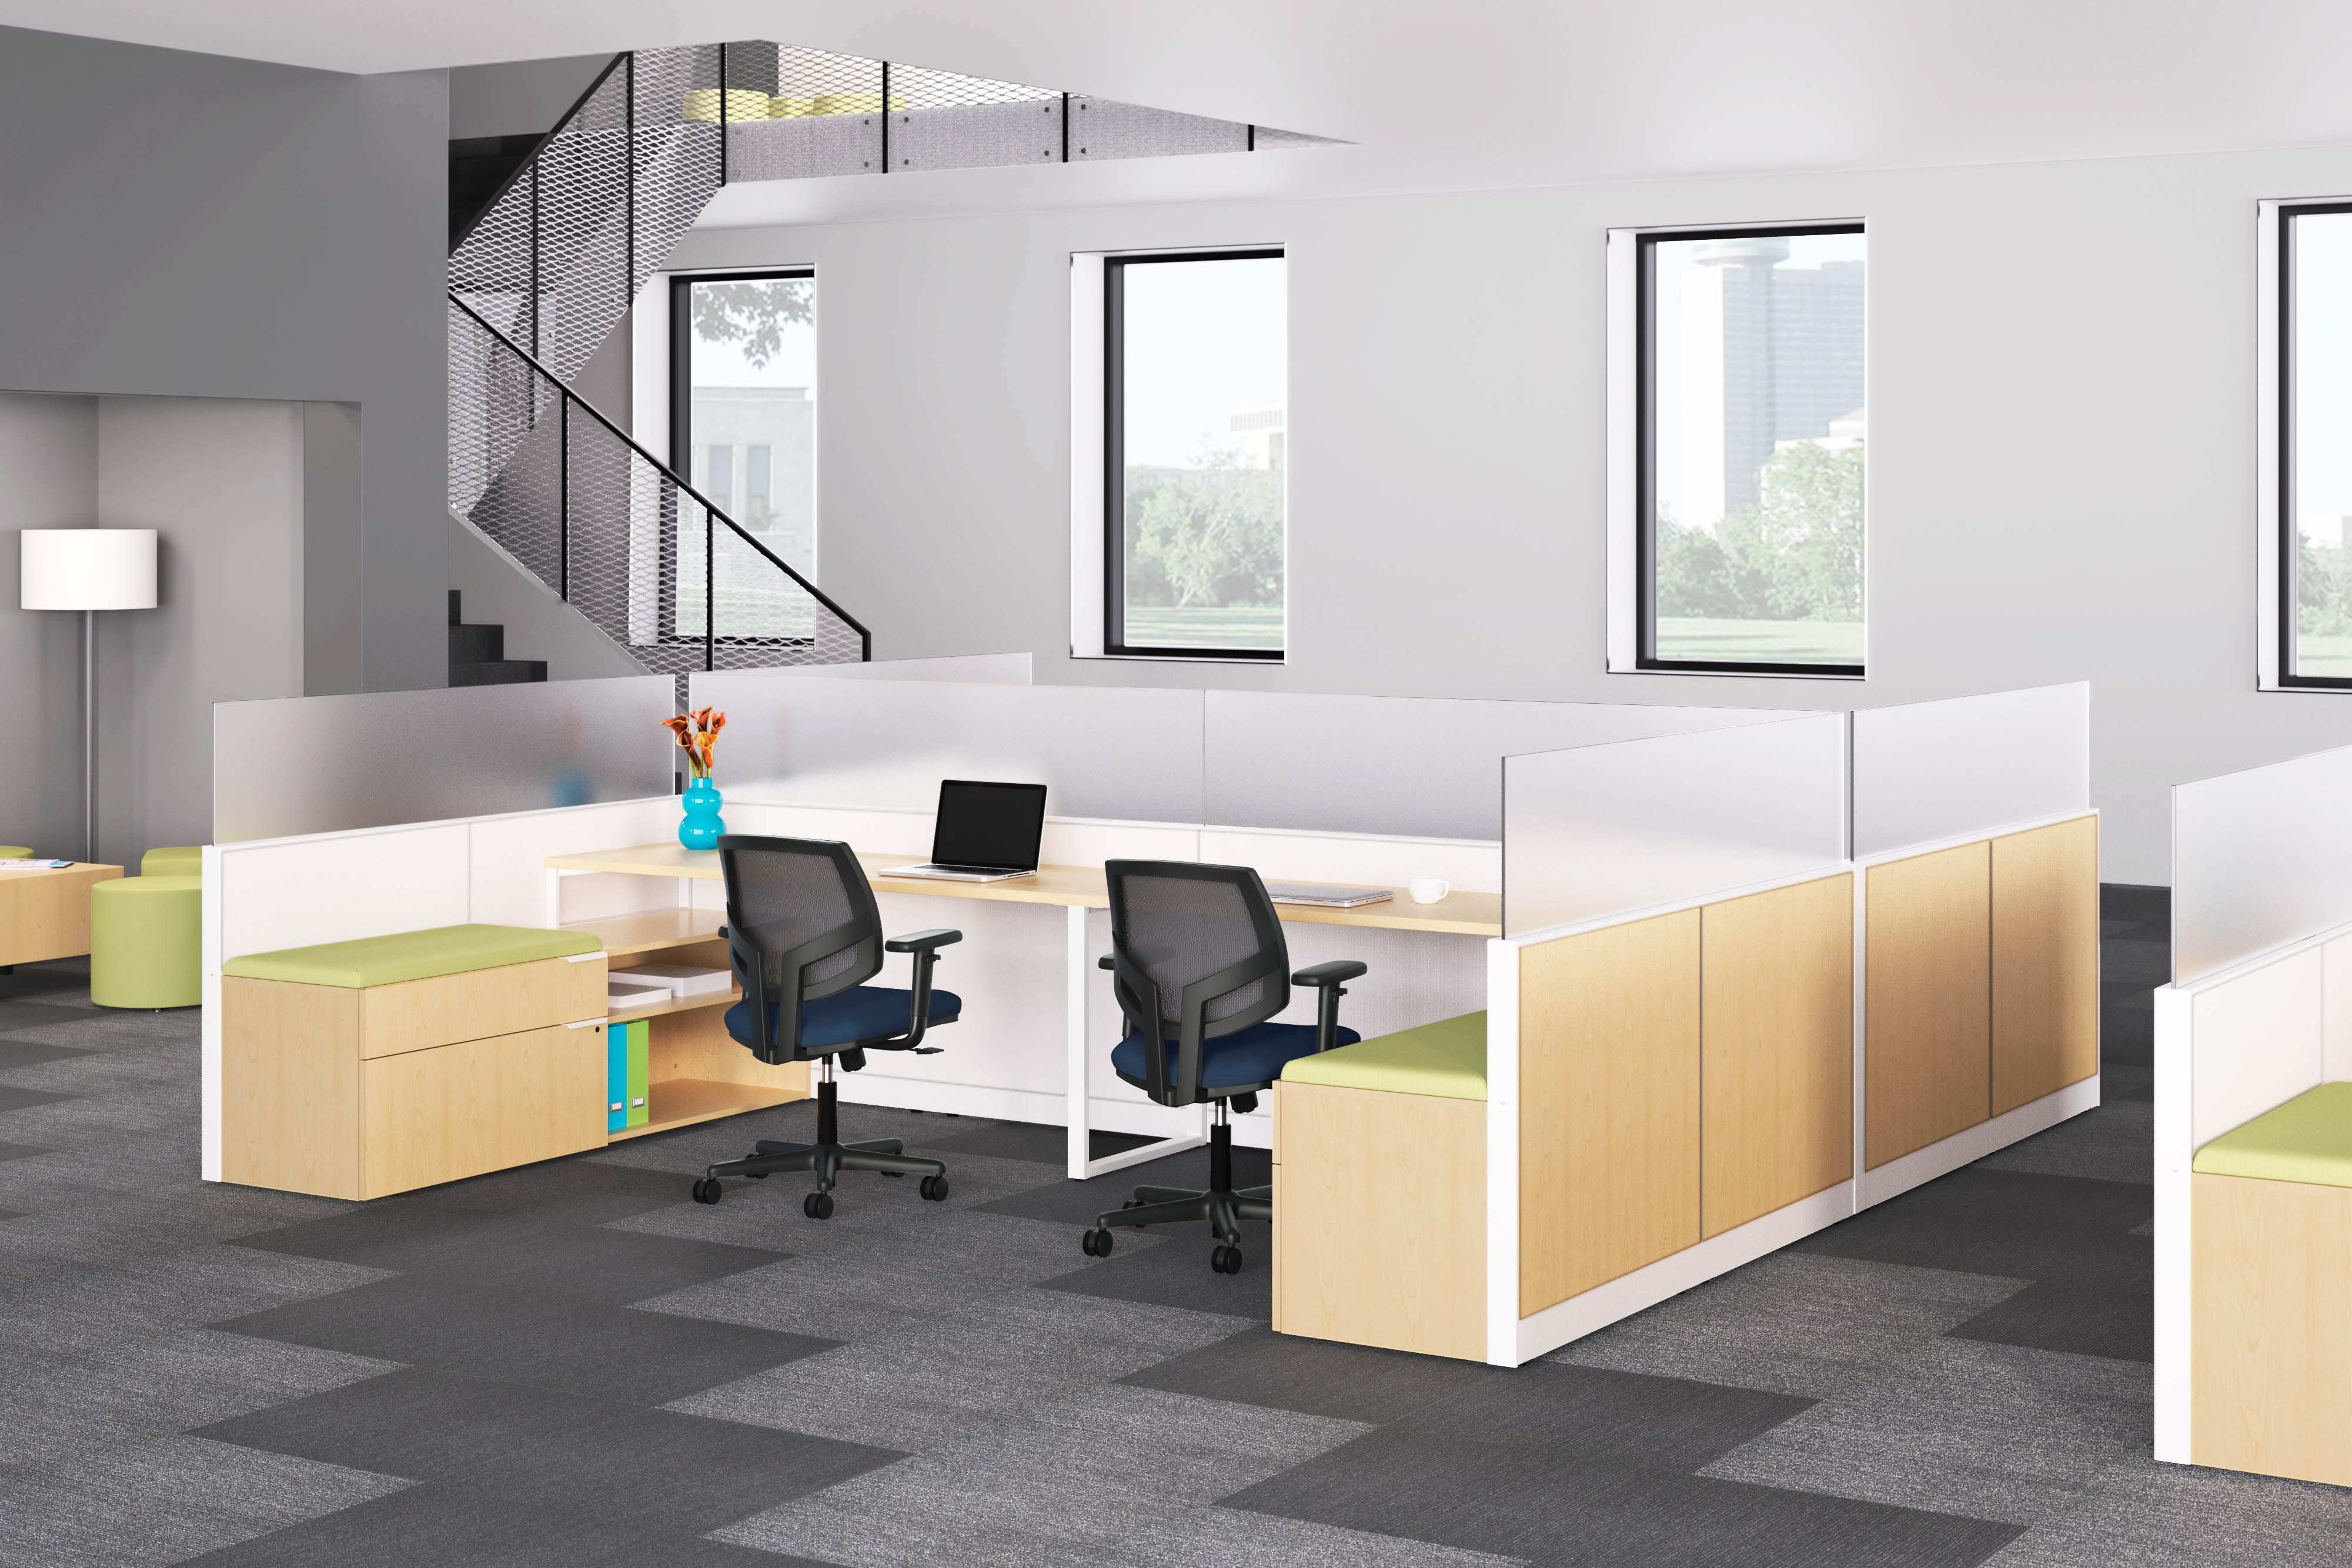 open space office design ideas. Ready To Say Goodbye Your Outdated Office Space? Keep These Tips In Mind When Designing New, Attractive Modern Office. Open Space Design Ideas L